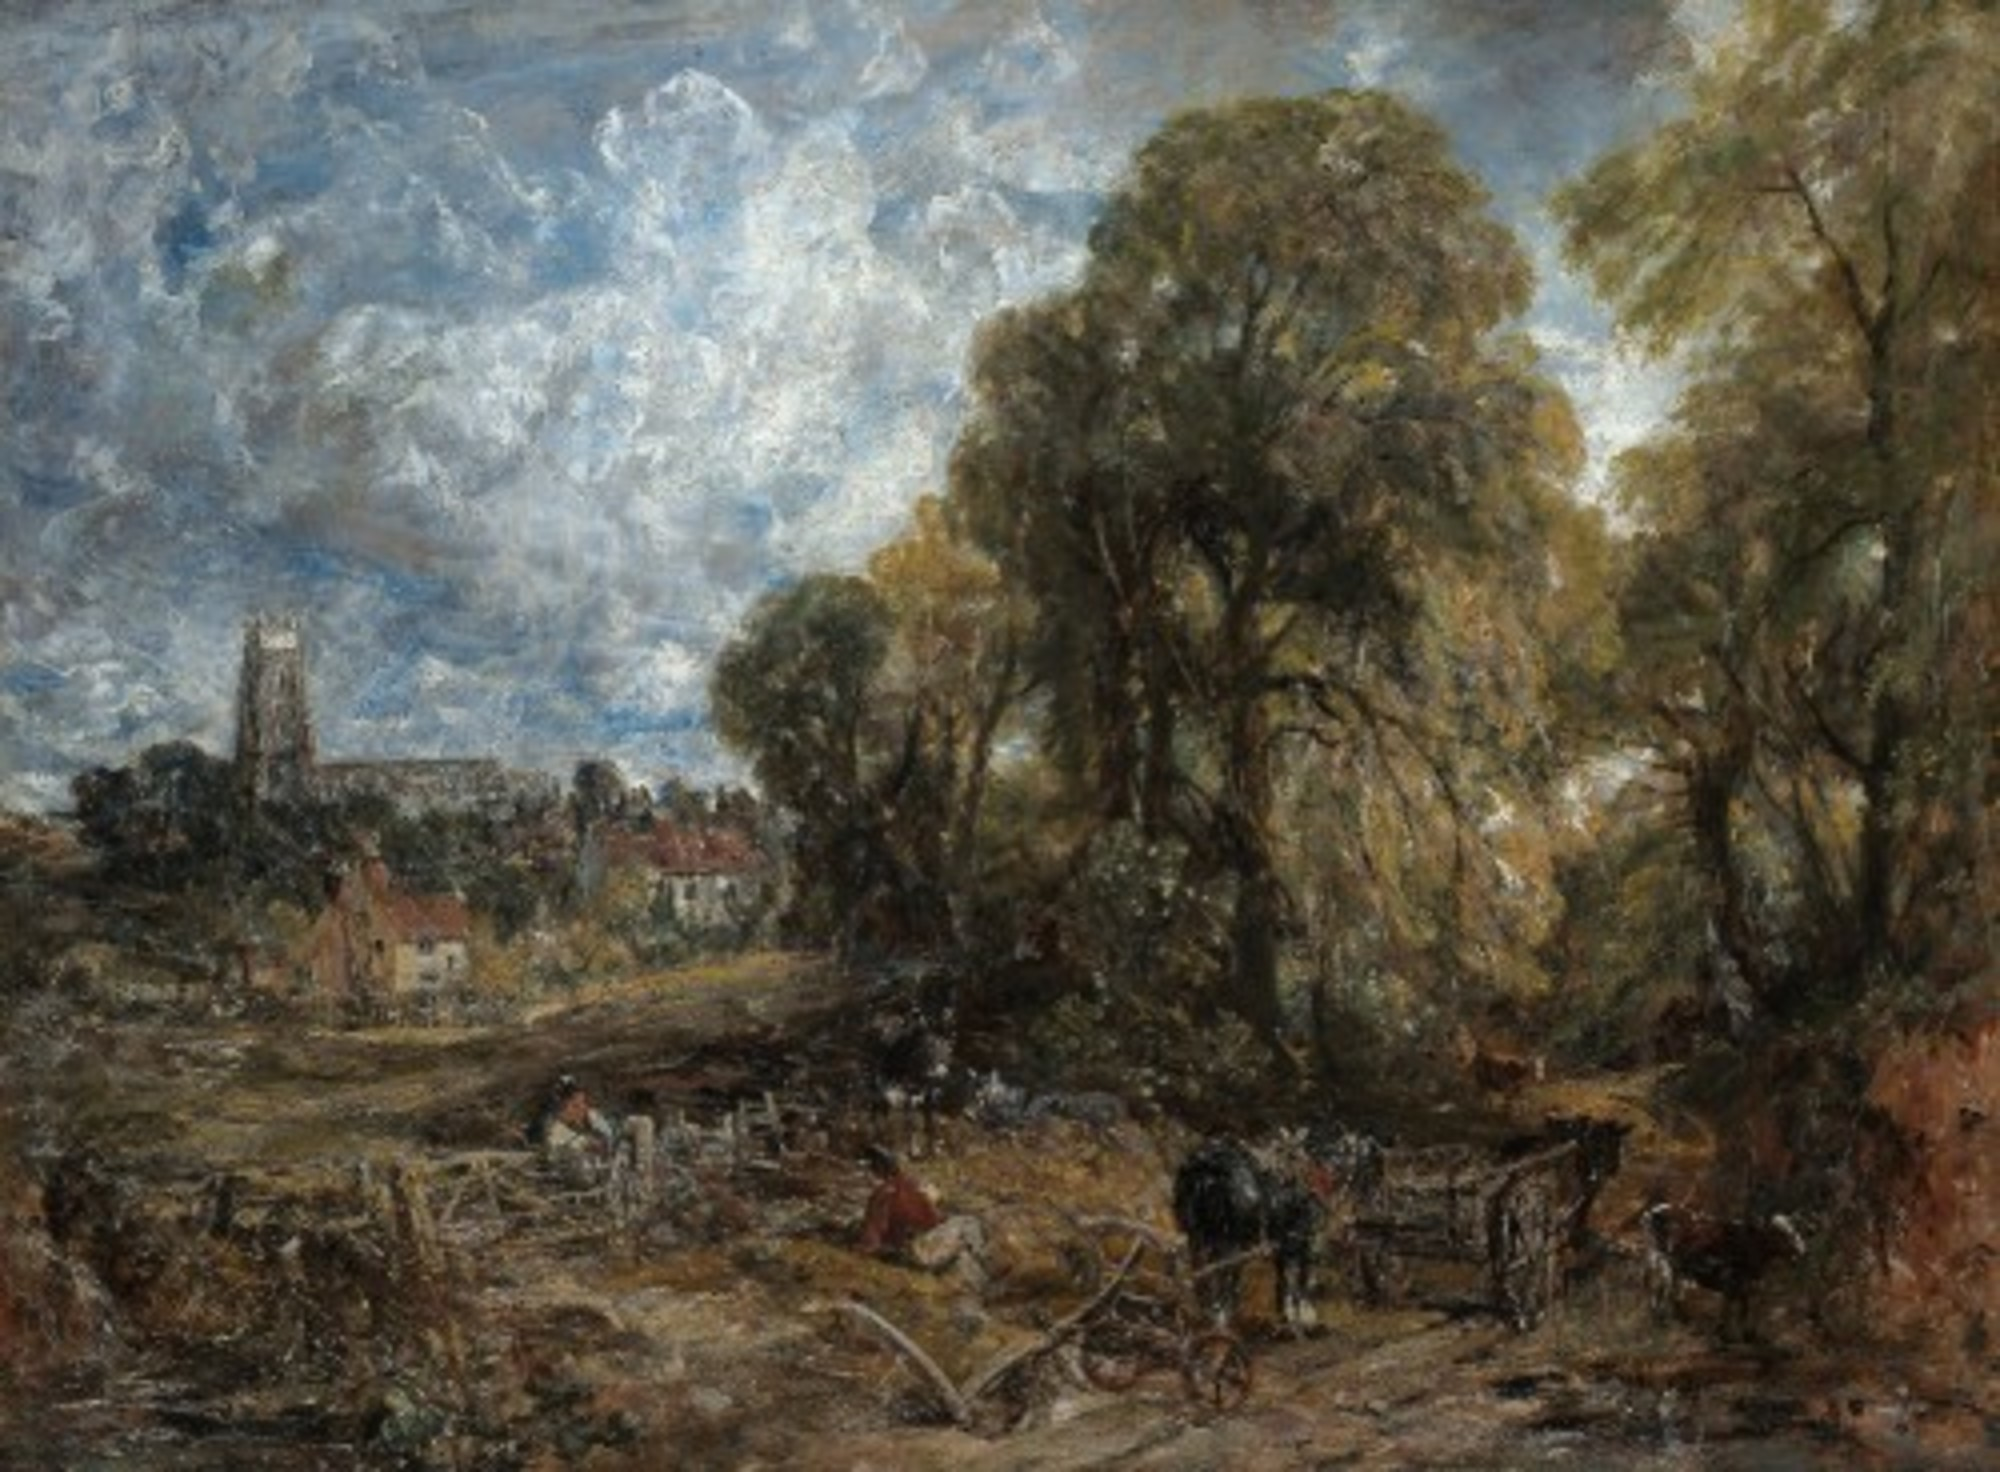 John_Constable_-_Stoke-by-Nayland_-_1922.4453_-_Art_Institute_of_Chicago.jpg